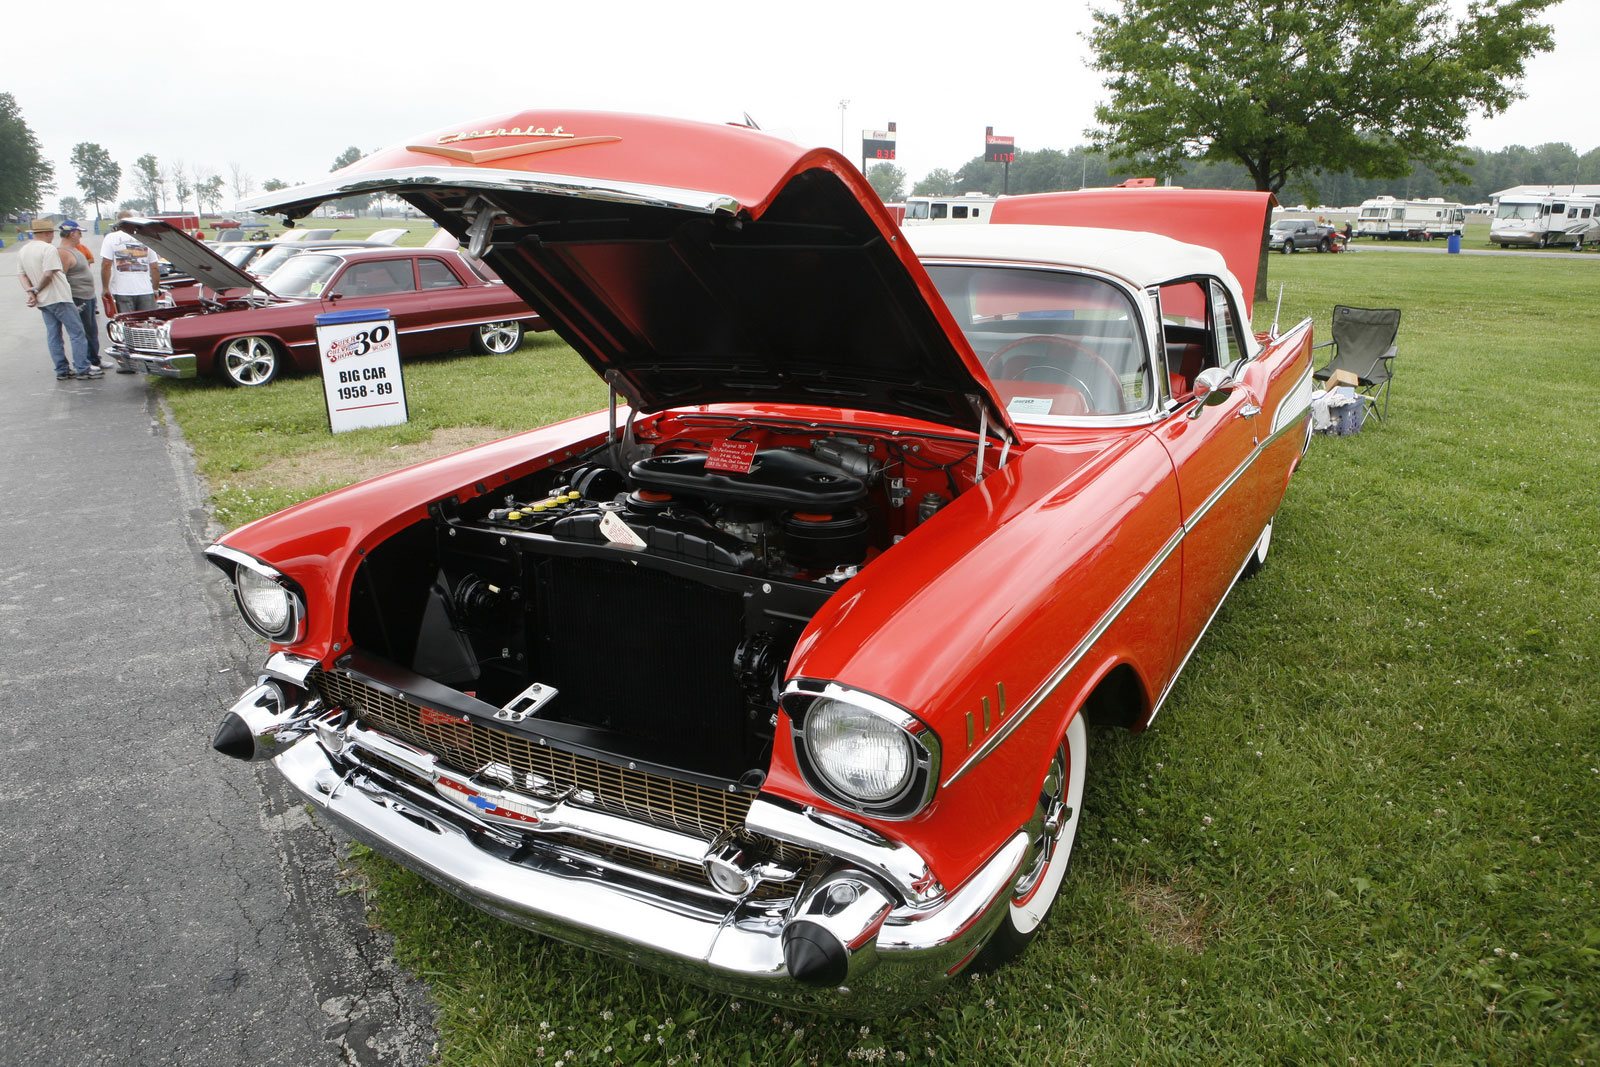 Sucp_1006w_01 Super_chevy_show_2010 Norwalk_ohio_day_two